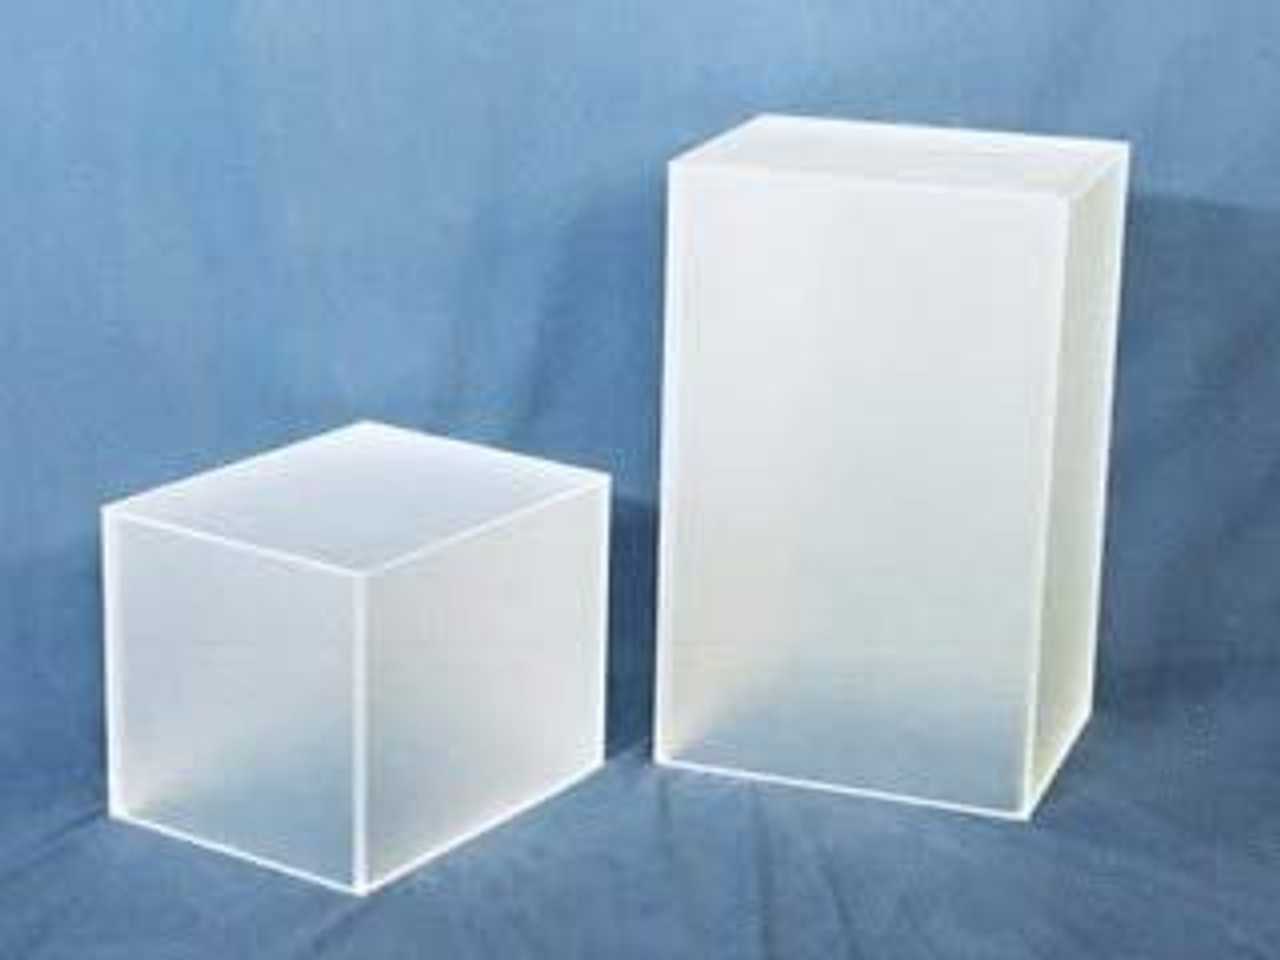 Clear Stands Rectangular Acrylic Display Cube, Frosted Finish, White, 36 Inch